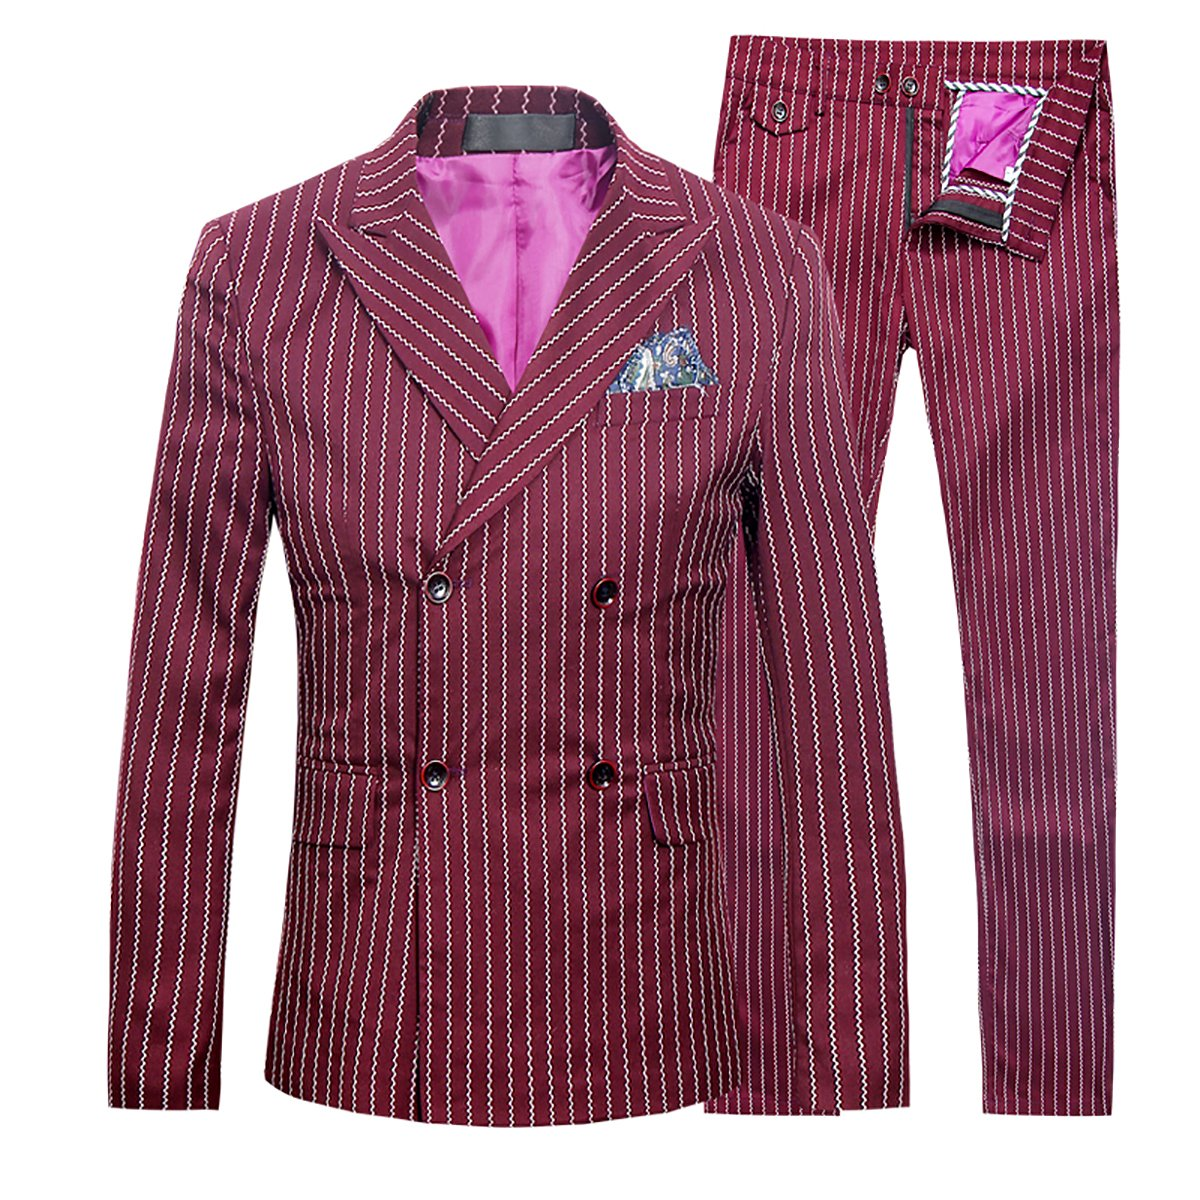 Cloudstyle Mens 3 Piece Suits Pinstripe Double Breasted Slim Fit Formal Wedding Suits TZ55